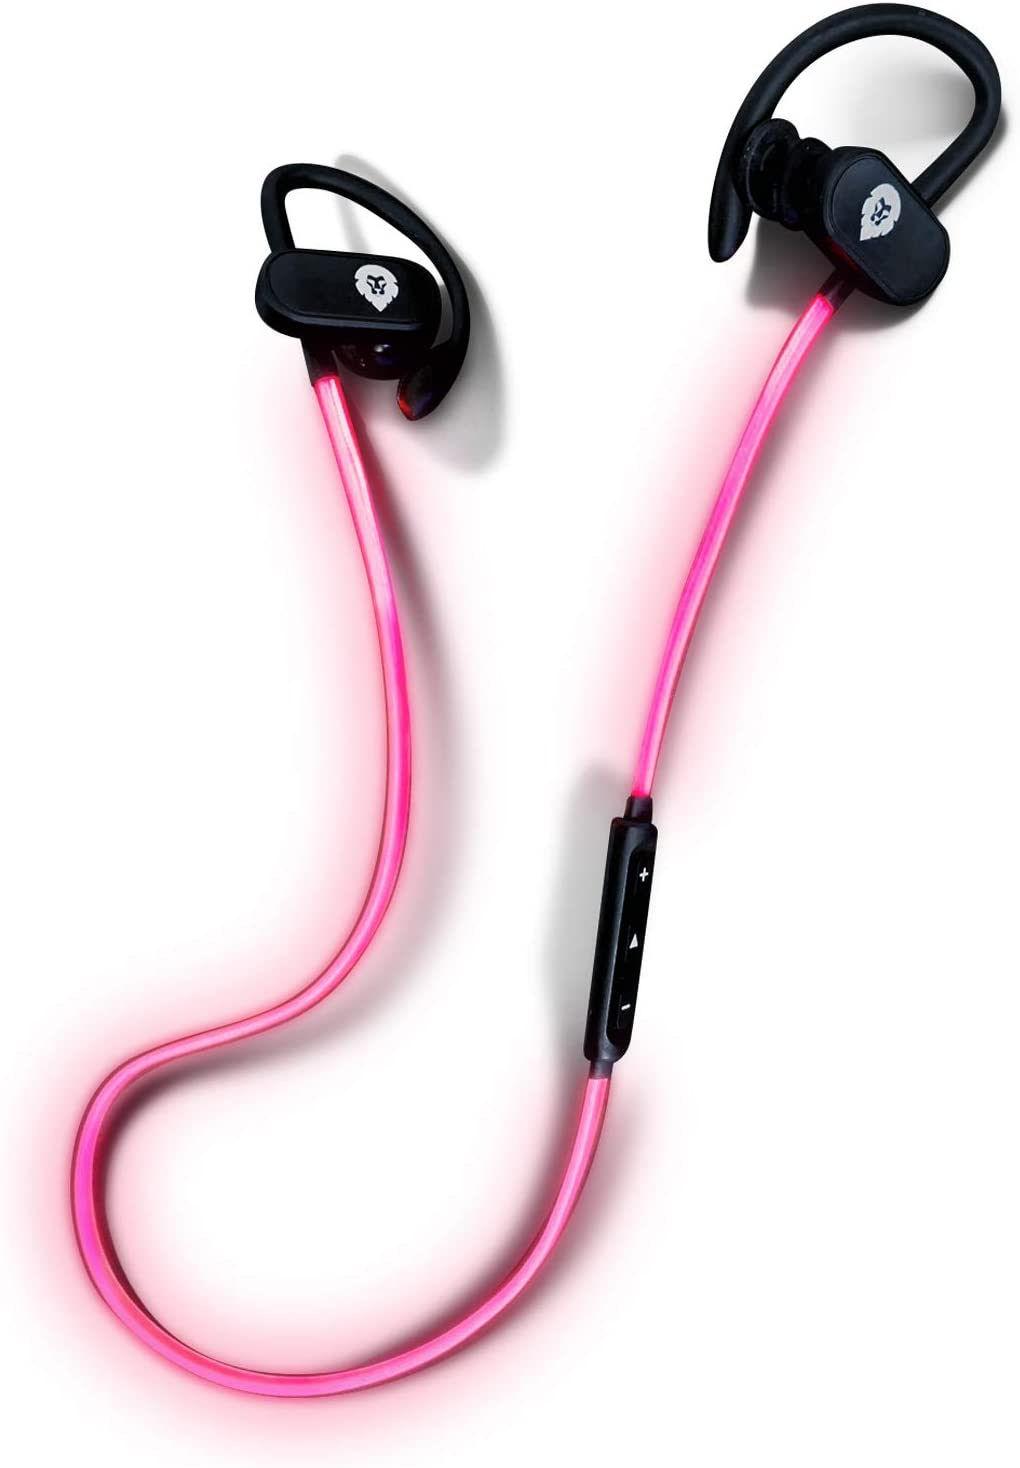 Auriculares Bluetooth Deportivos Luminosos Encore Soul Run, Marca Europea, Auriculares inalambricos Bluetooth 12h Sonido estéreo, Cascos Bluetooth con Micro para Smartphone, Tablet, pc iOS y Android